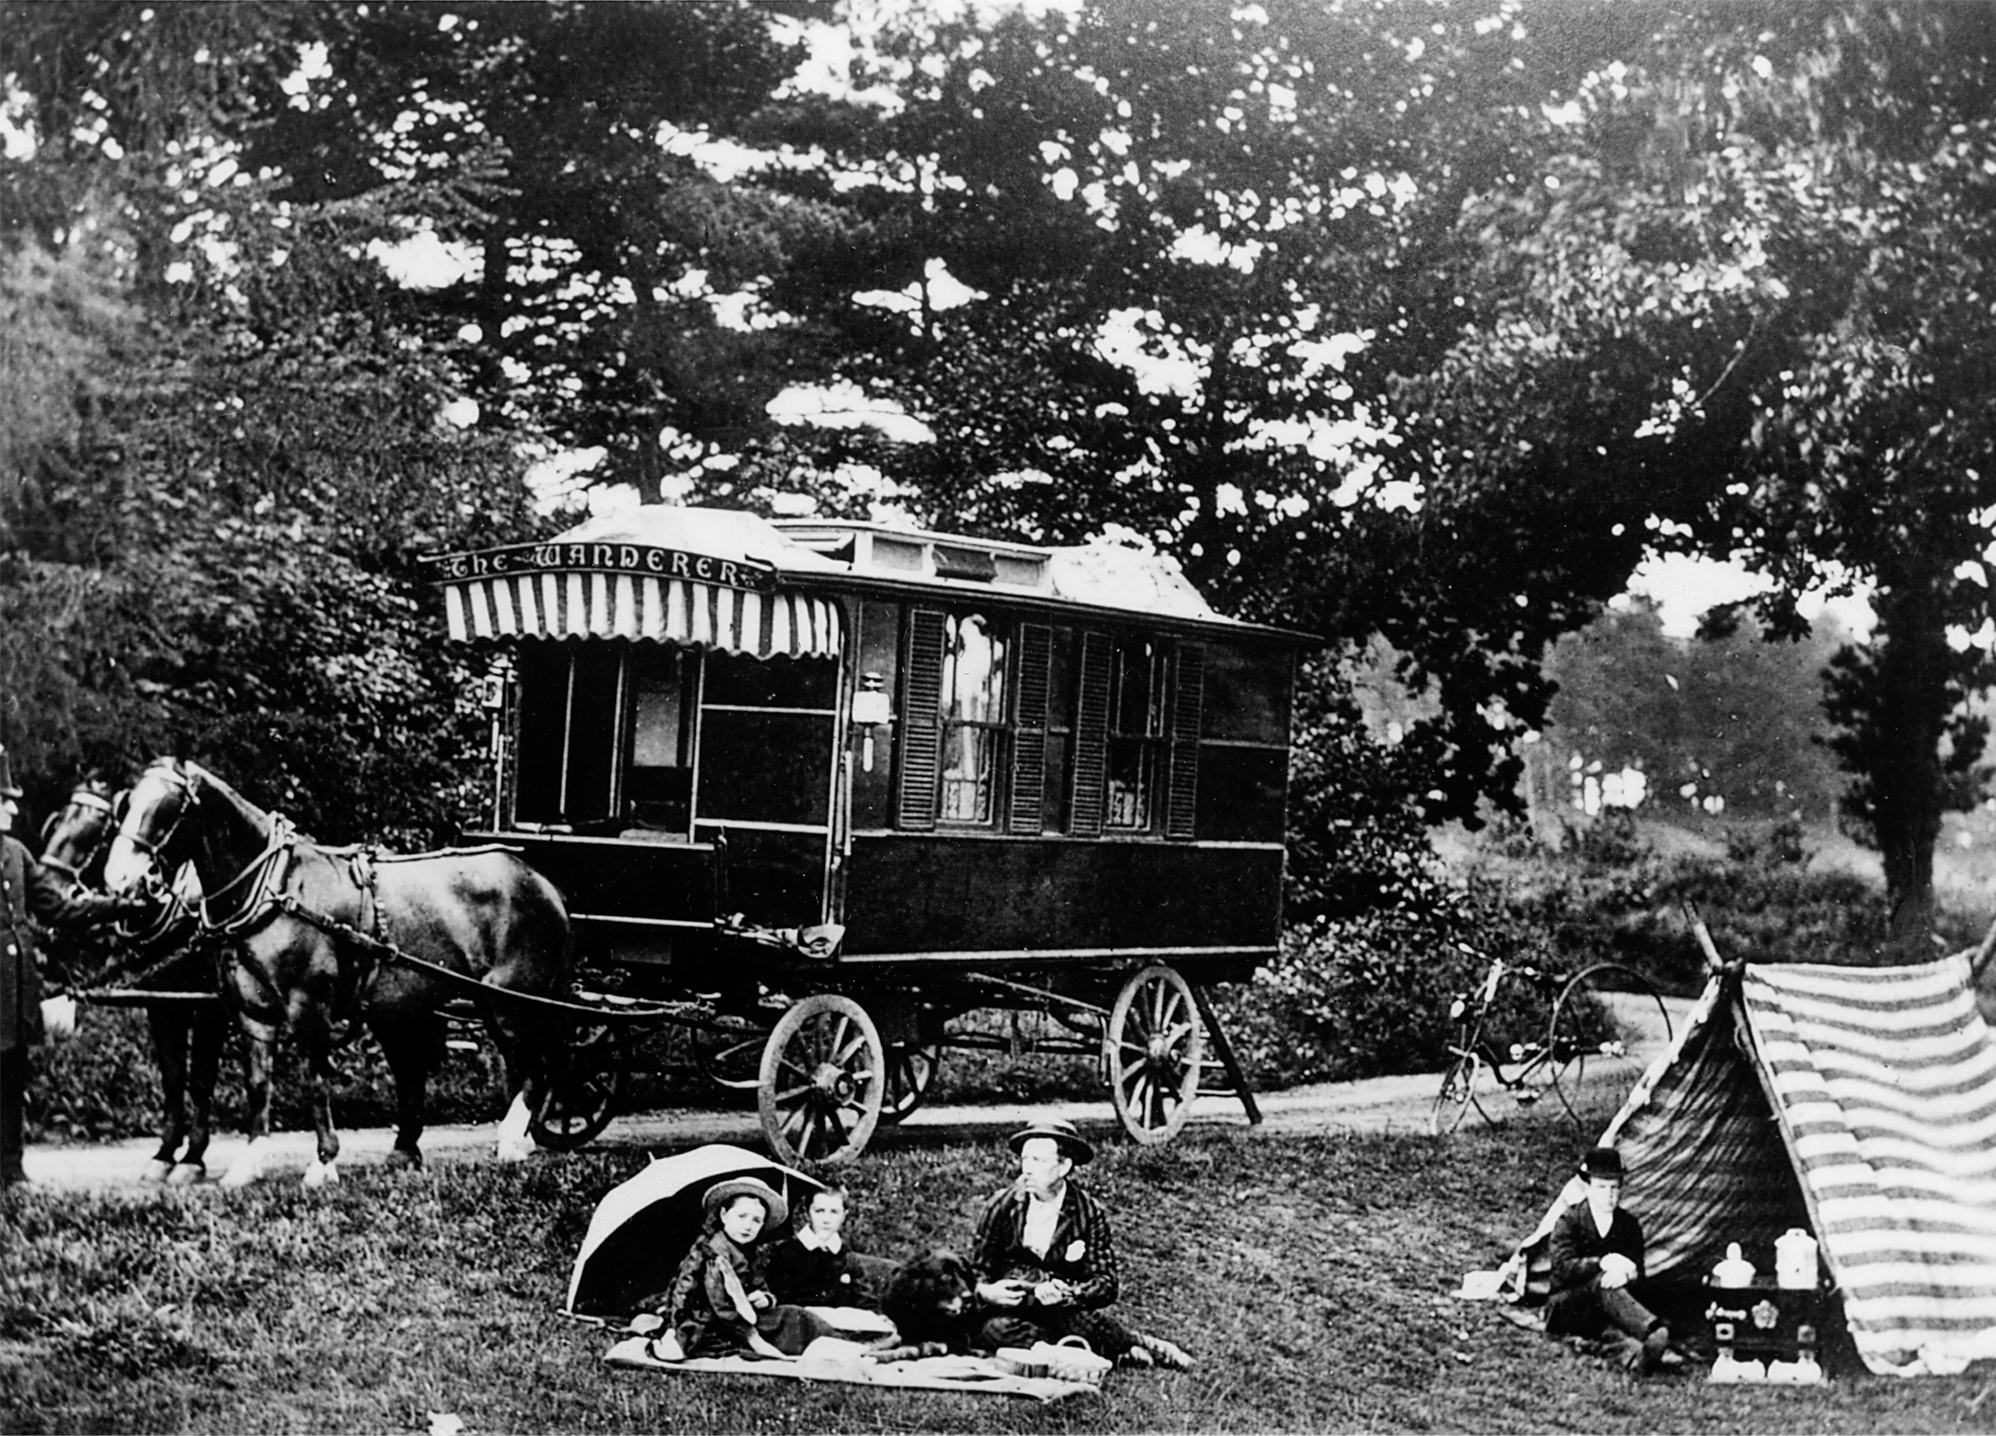 Caravan in the background with a group seated on a blanket in the foreground